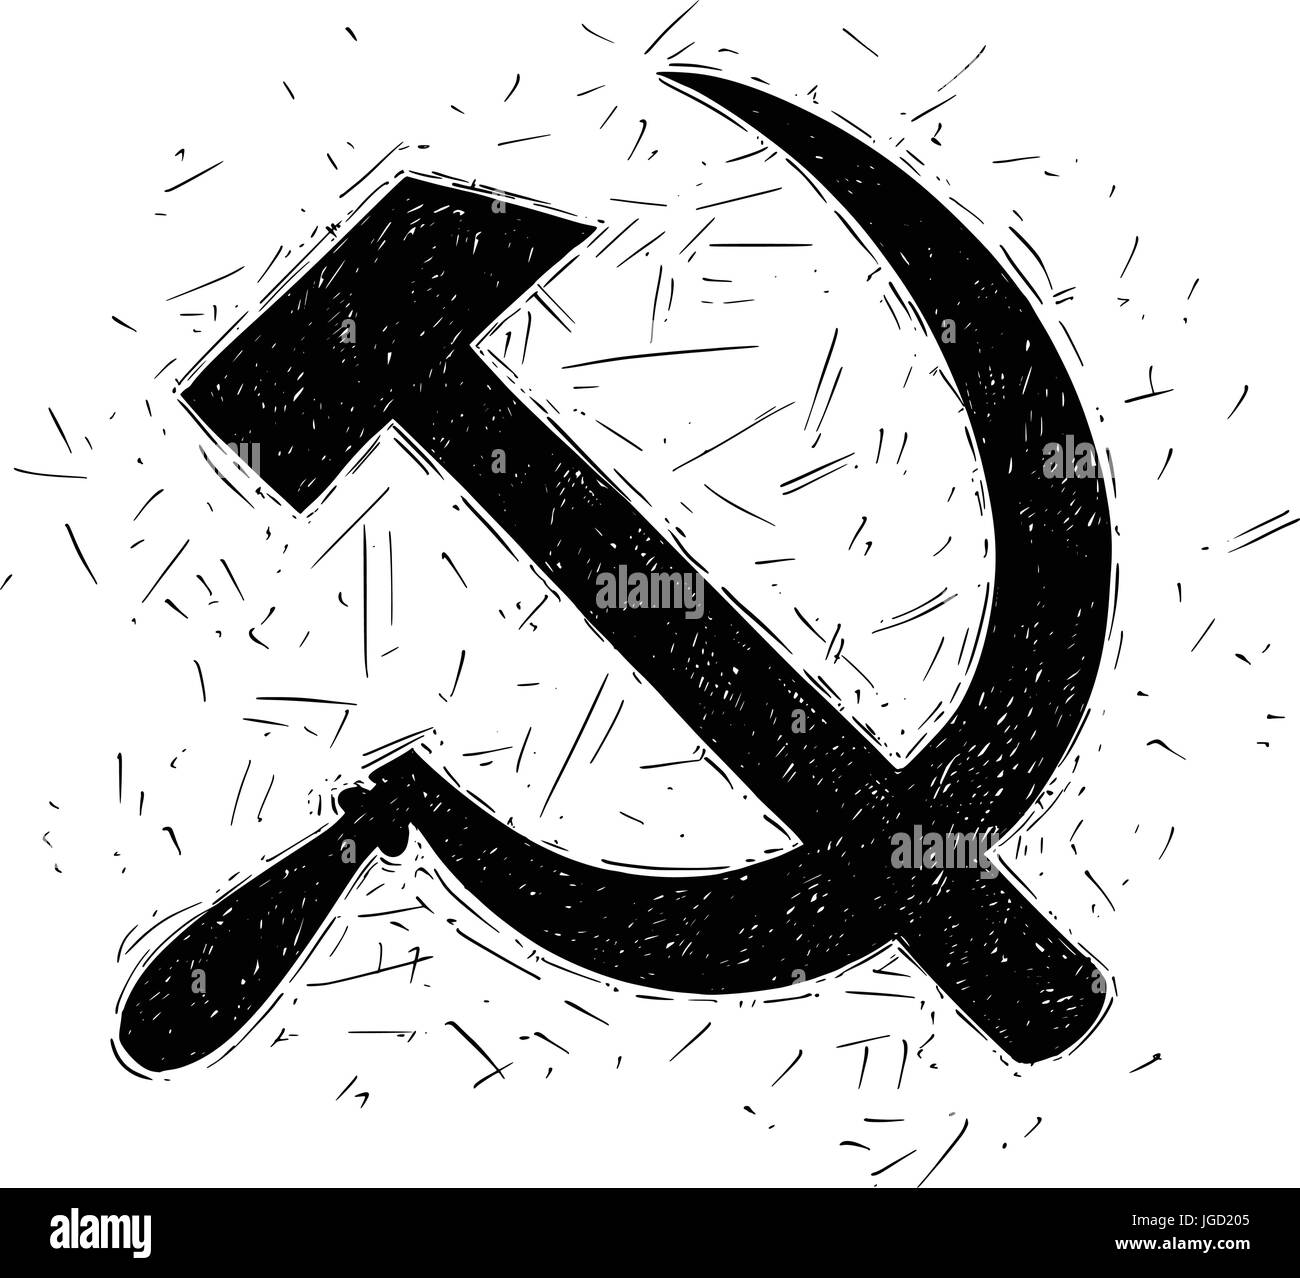 Hammer and sickle - symbol of communism and Soviet Union - Stock Image